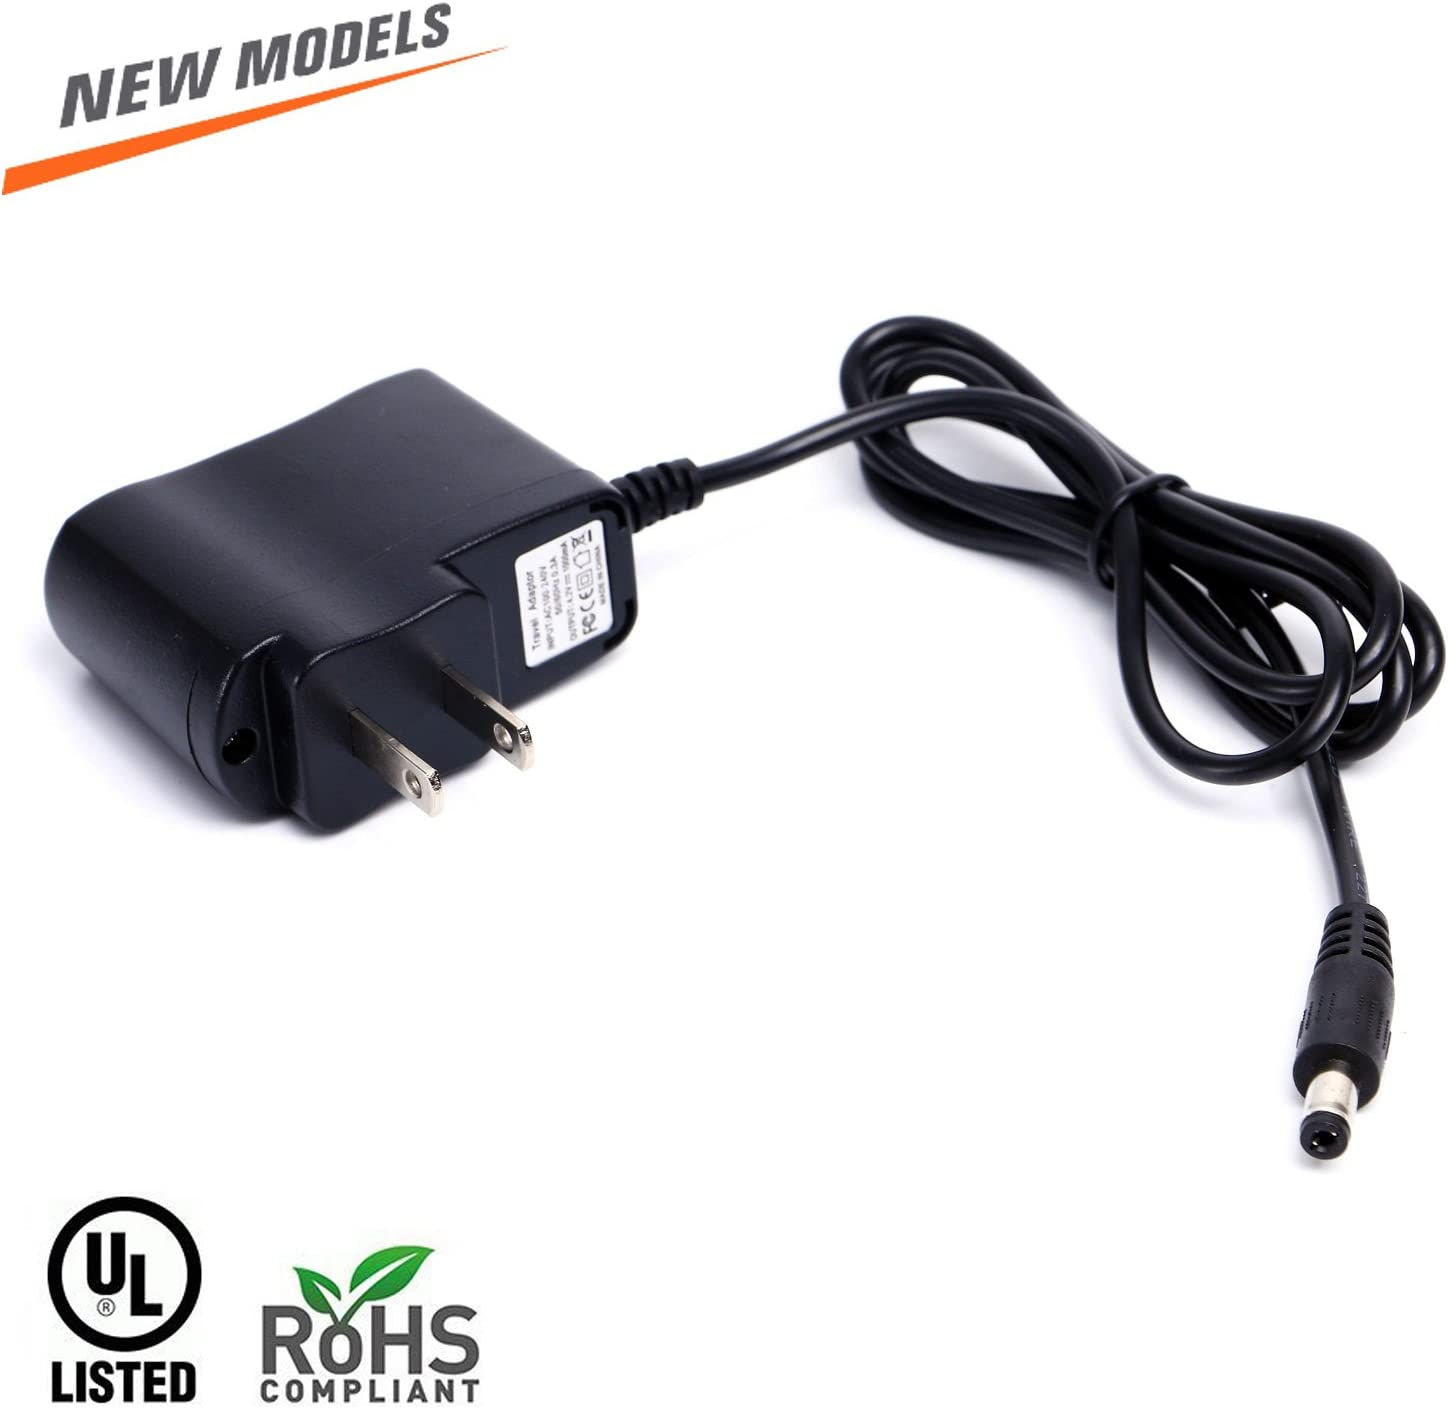 Adapter Power Supply 12V DC 2.1mm ~ 5.5 mm 1Amp UL Listed Suitable for searchlight, Flashlight, Headlight Charging